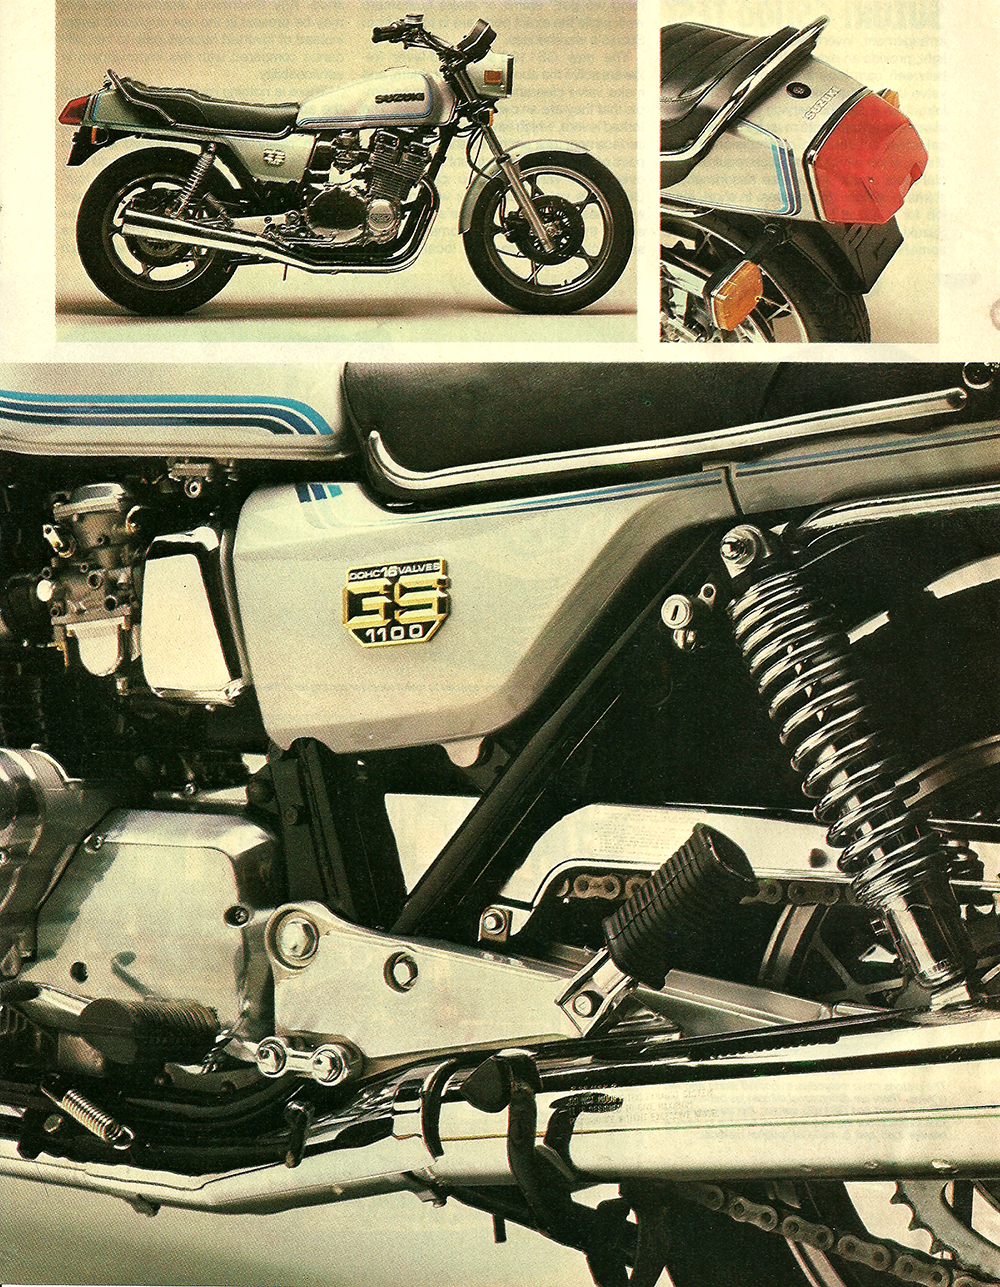 1980 Suzuki GS1100 ET road test 04.jpg